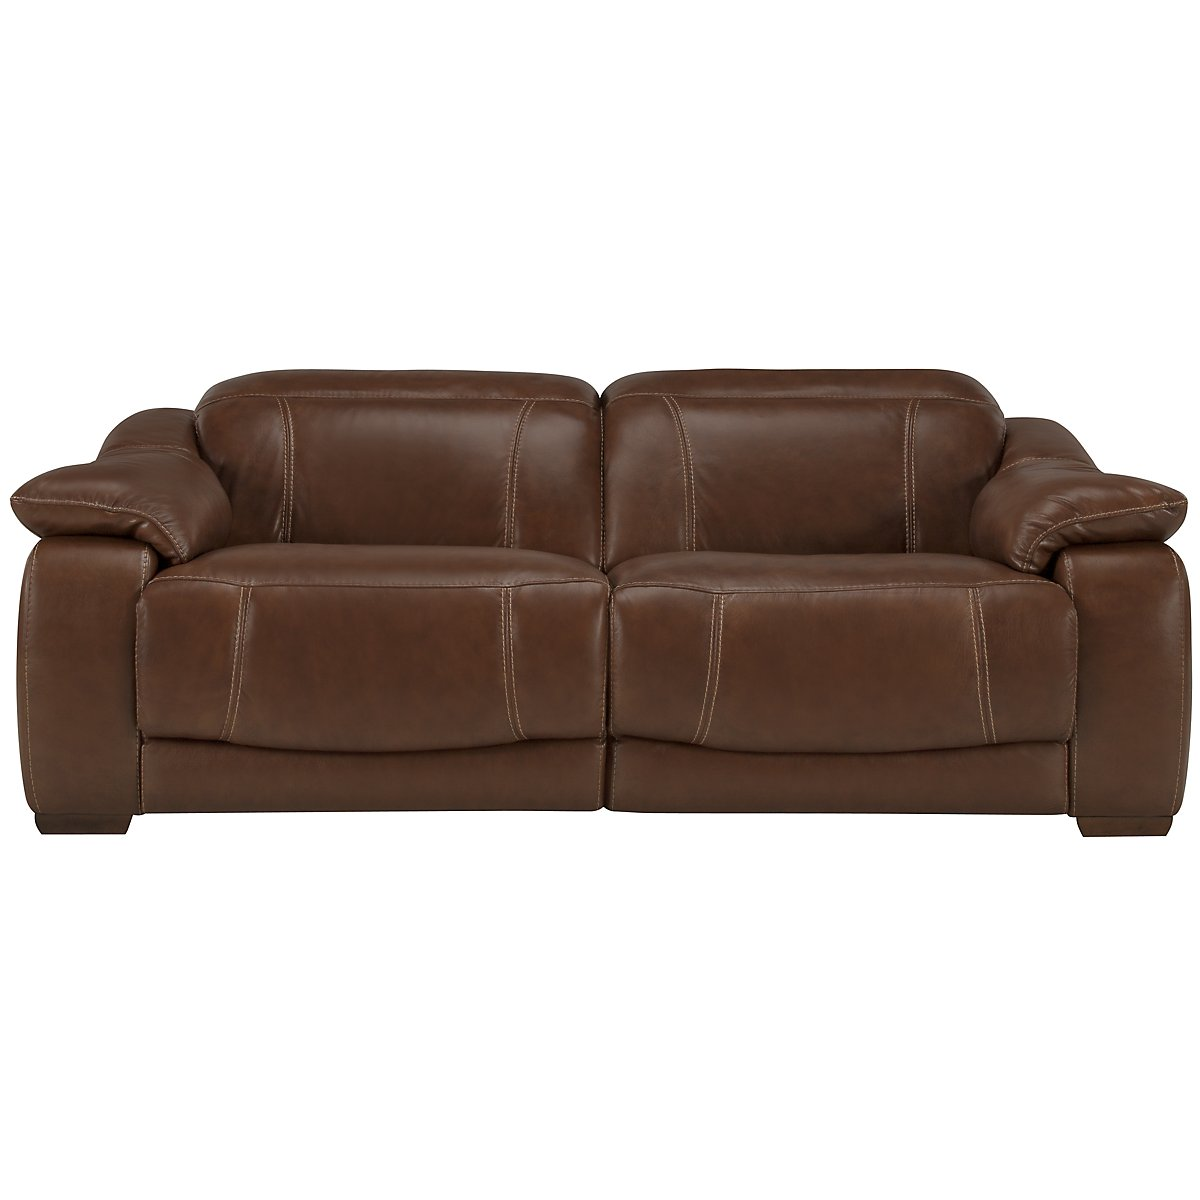 Orion Medium Brown Leather & Bonded Leather Reclining Loveseat